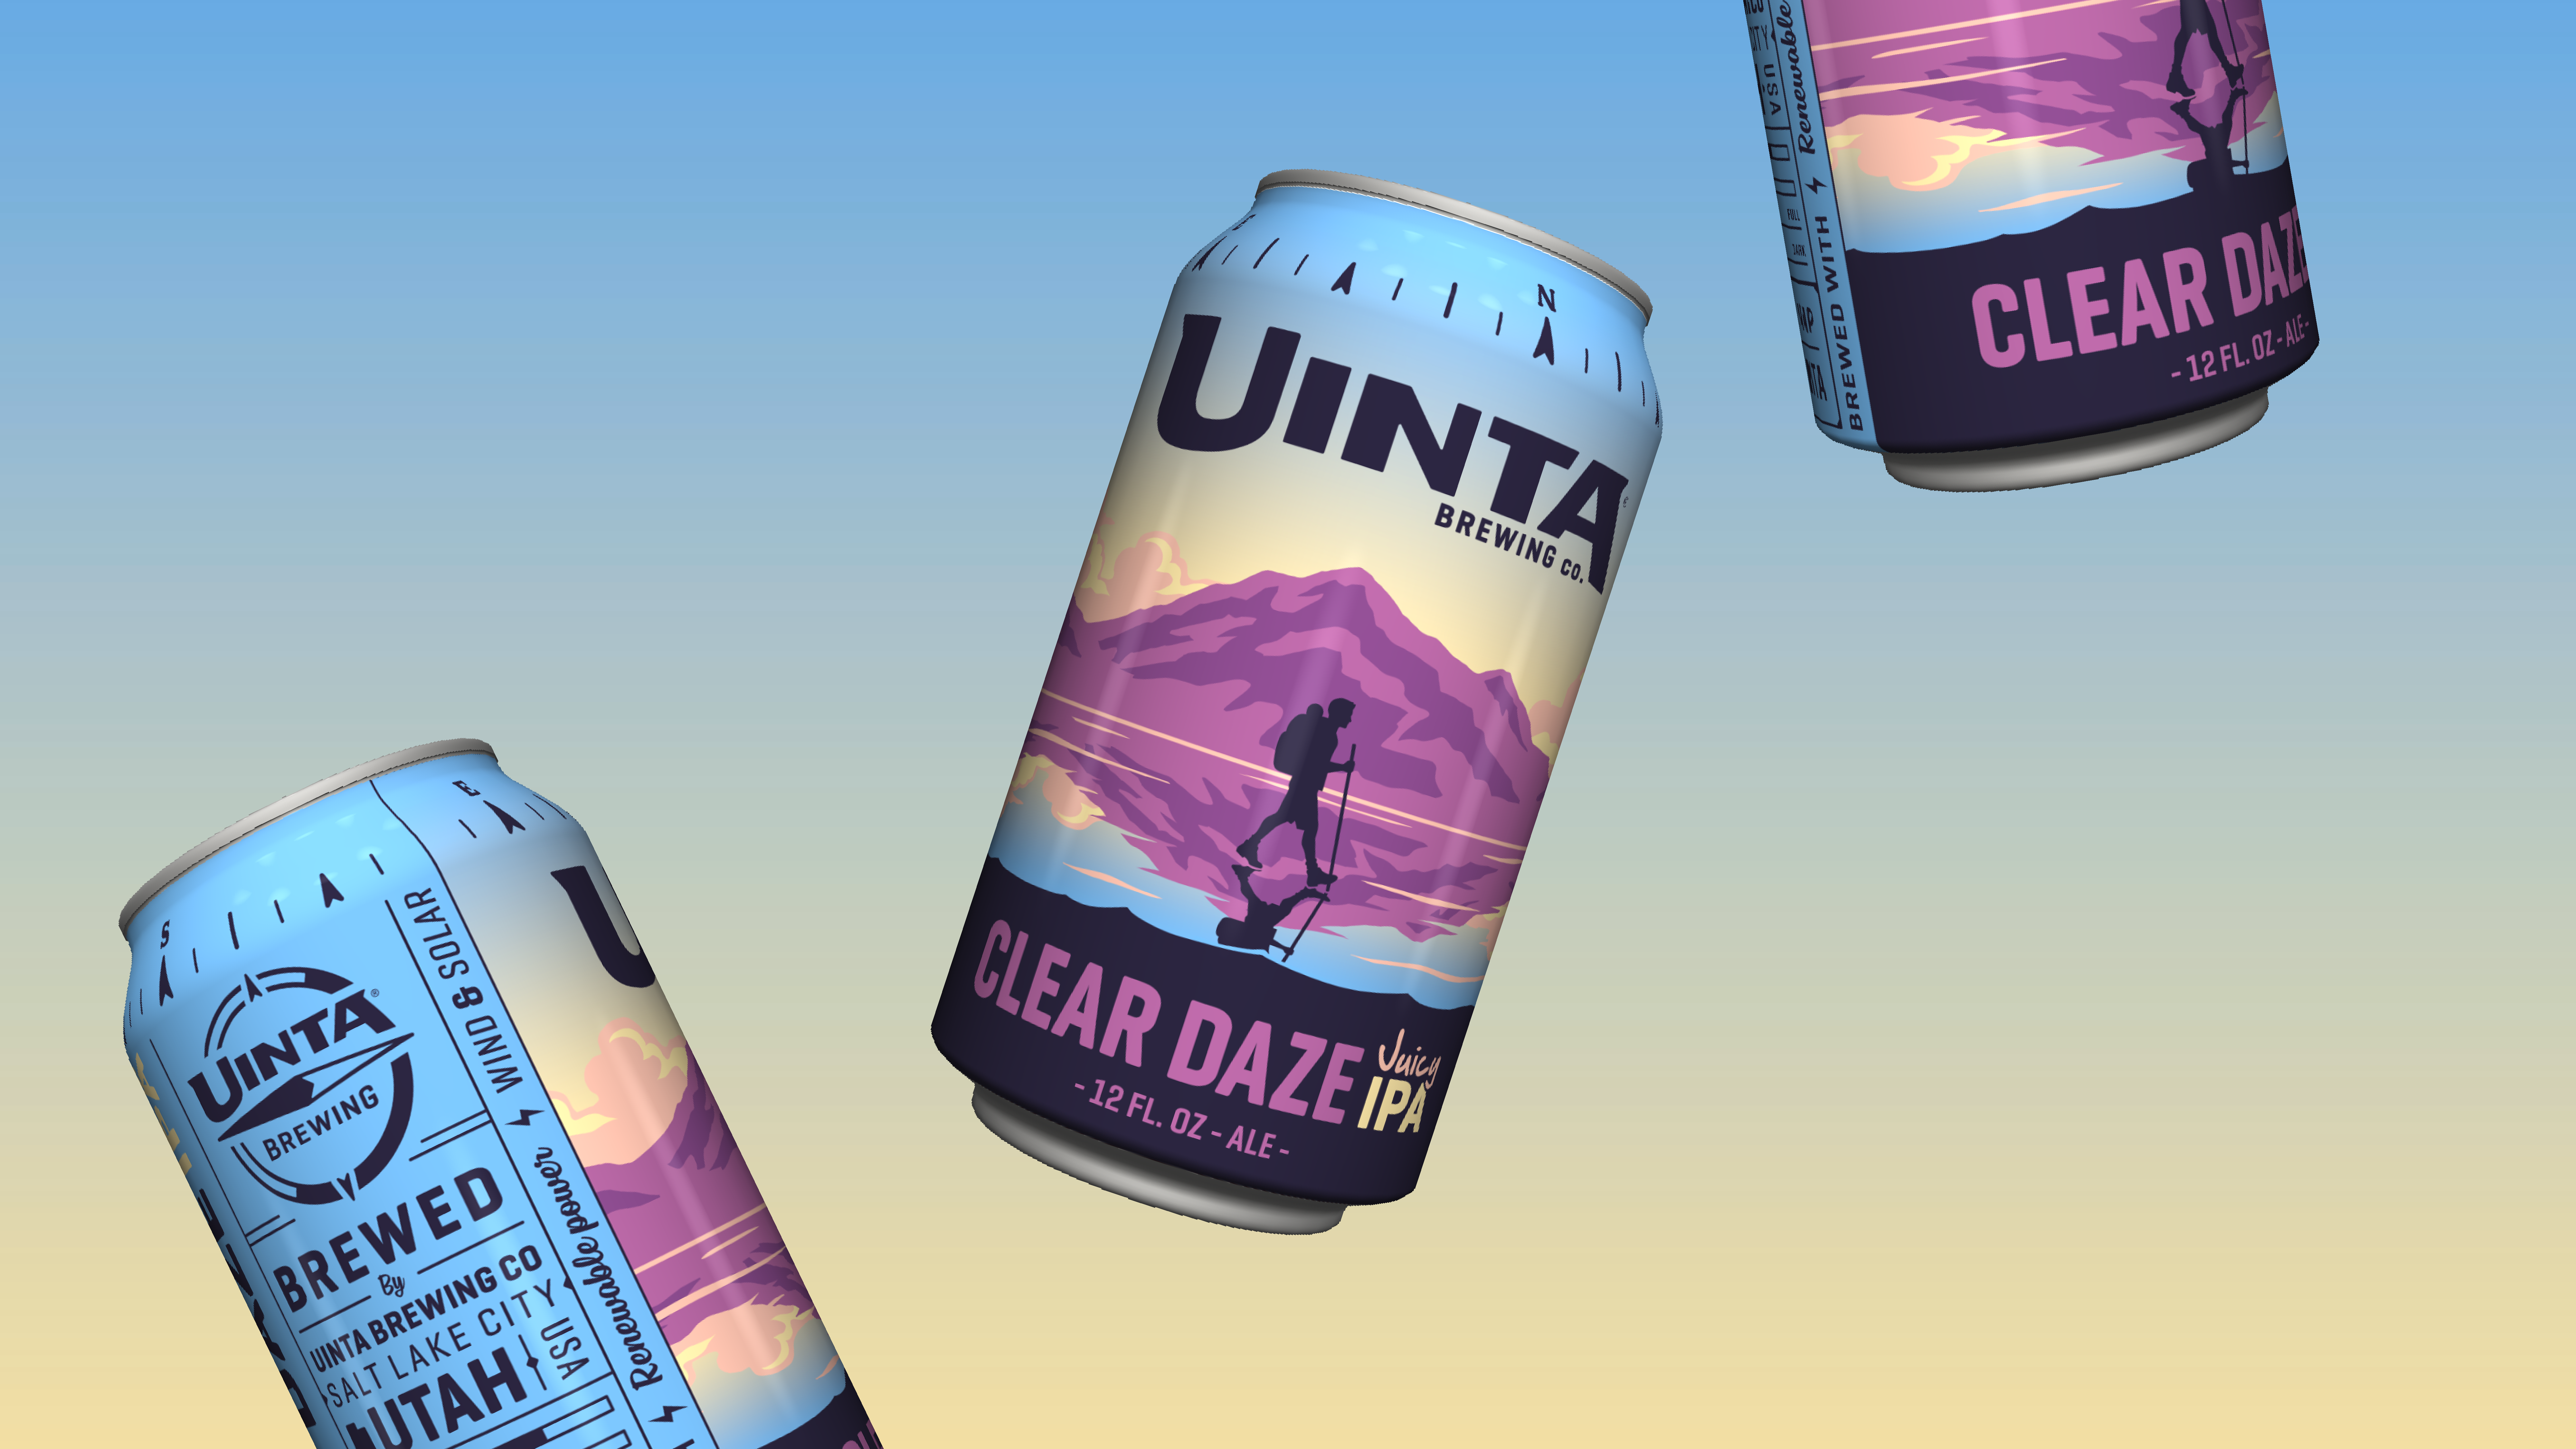 Uinta Clear Daze Cans